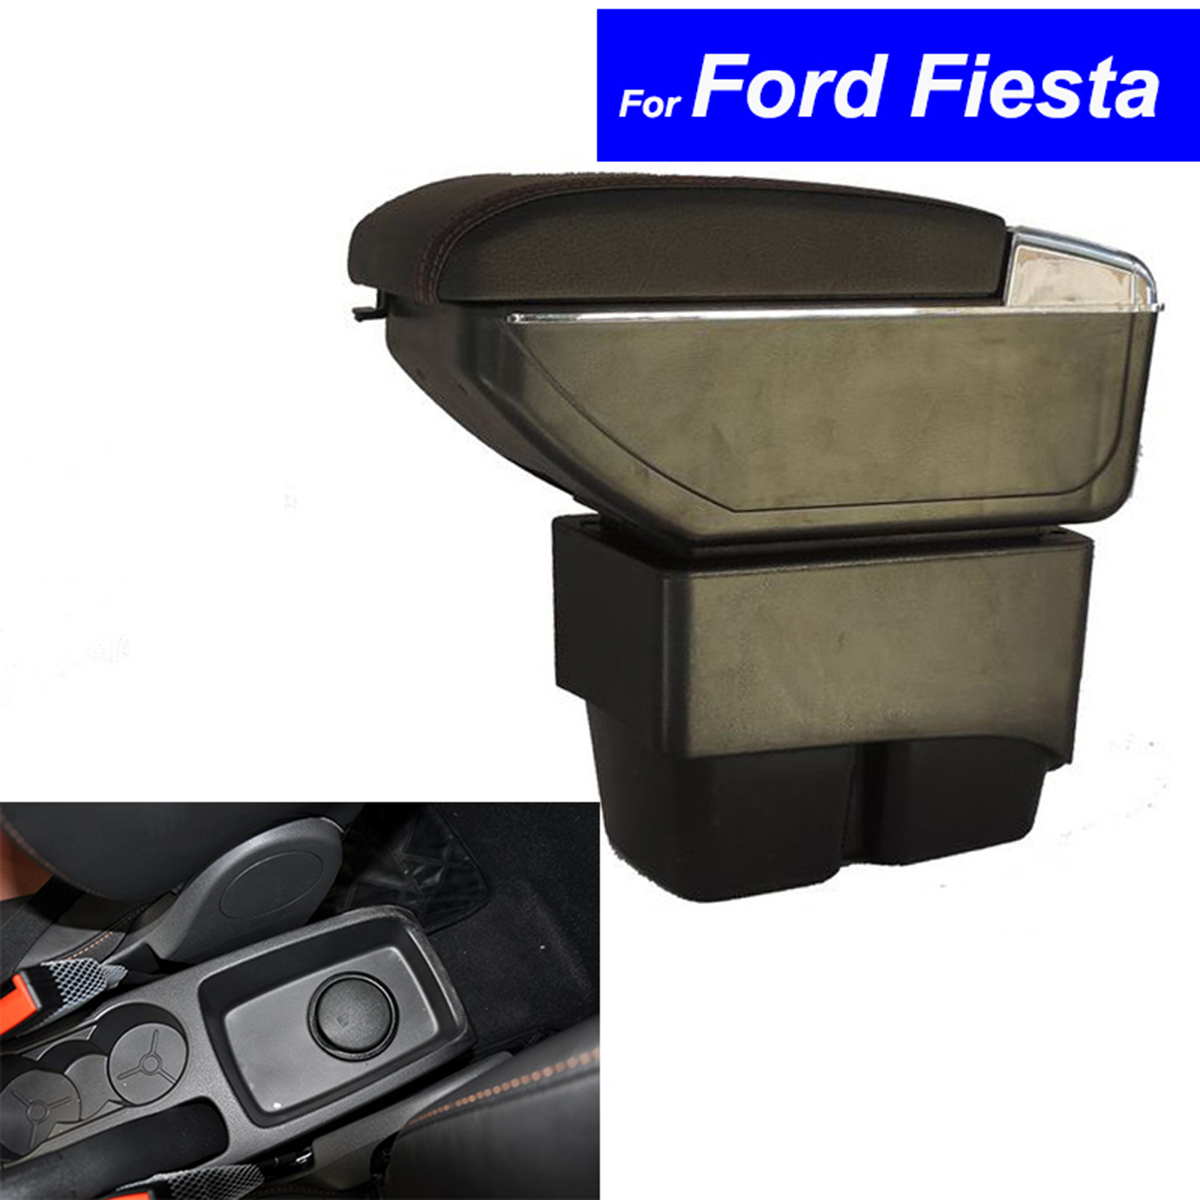 Leather Car Center Console Armrests Storage Box for Ford Fiesta 2003 ~ 2010 2011 2012 2013 2014 Auto Parts Free Shipping high quality black storage box armrest center console for ford focus 2012 2014 only fit for low equiped model